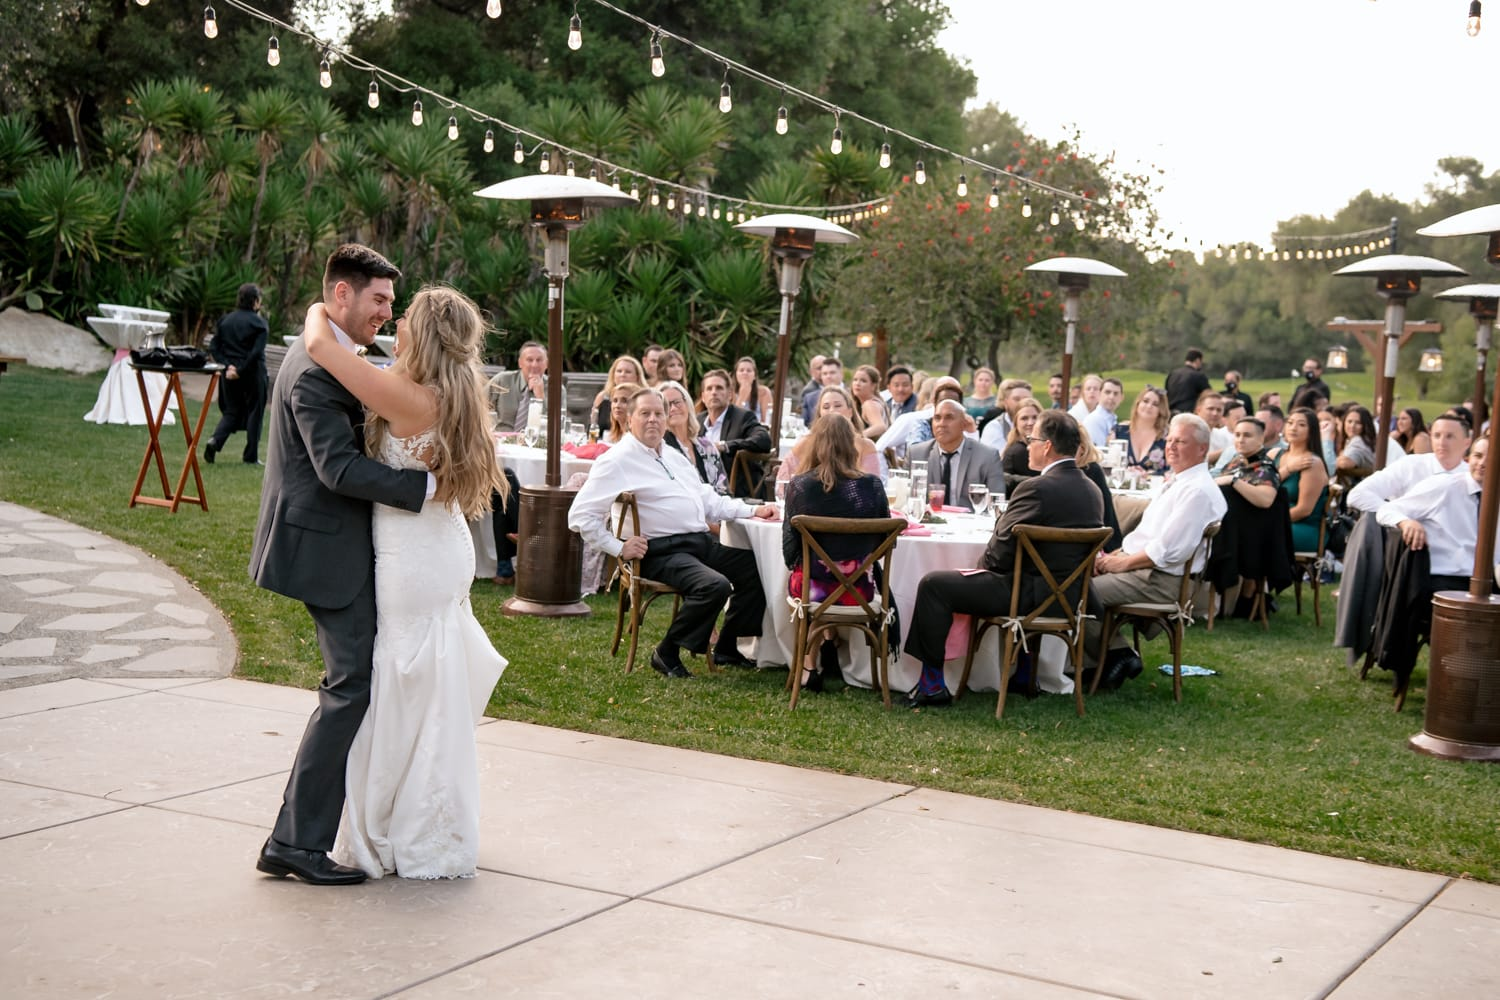 Couples first dance at The Stone House wedding reception